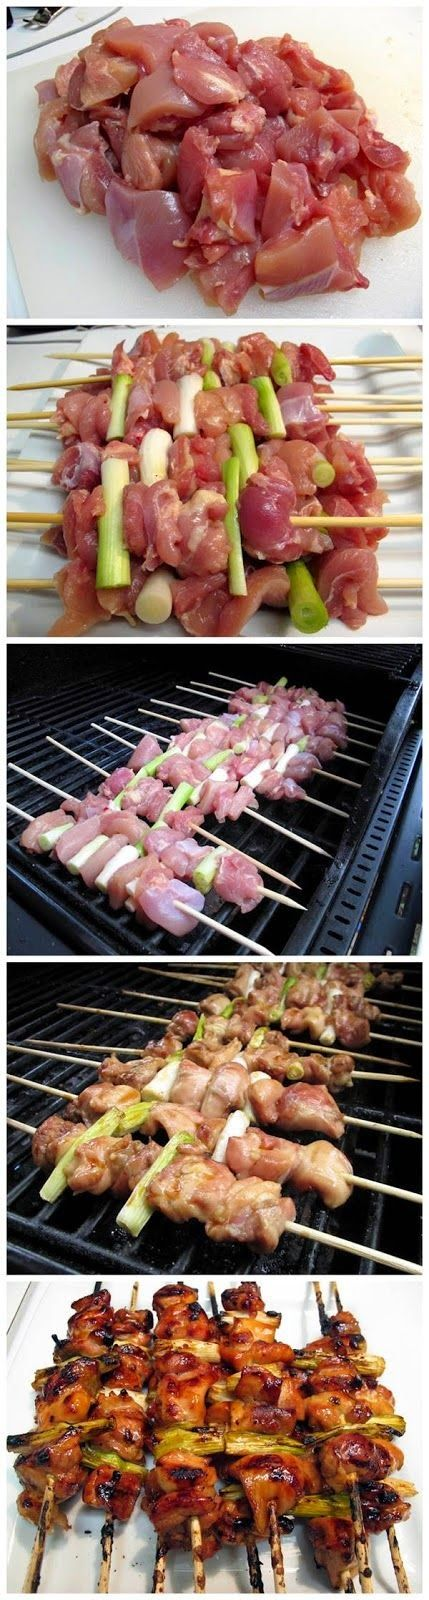 """Yakitori - Japanese Grilled Chicken   """"These Look Absolutely Yummy and Delicious!!"""""""